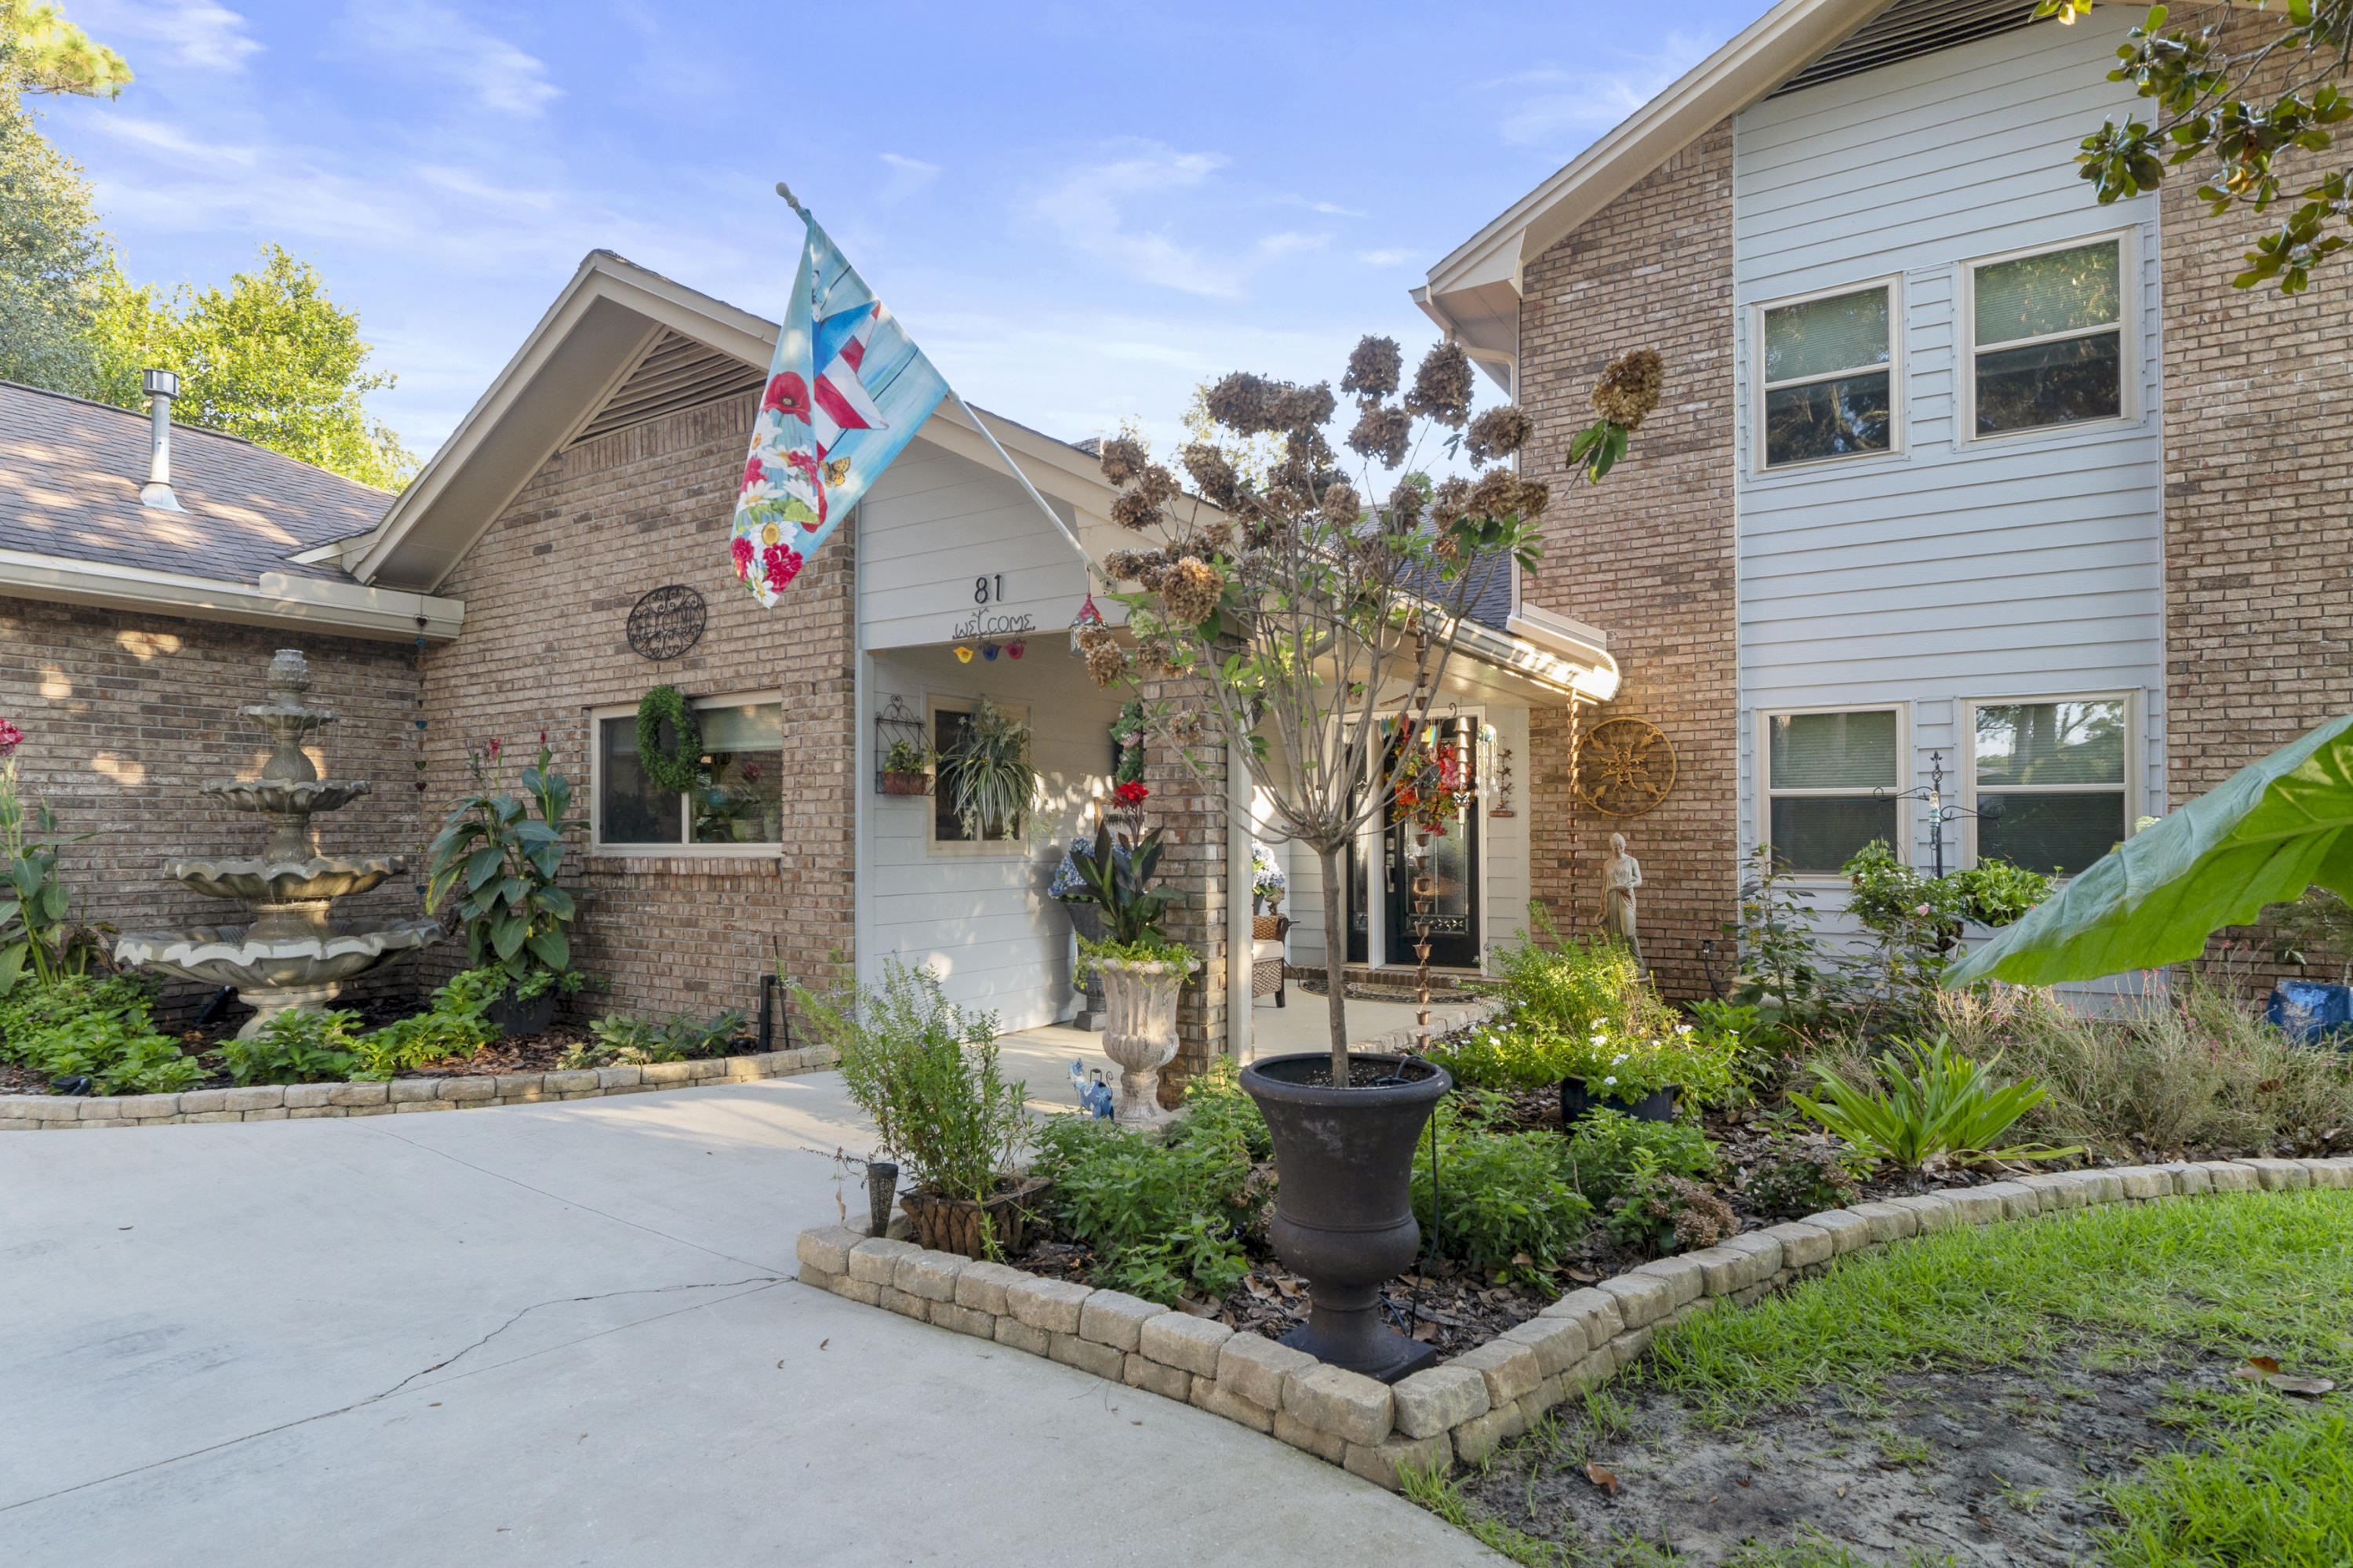 Photo of home for sale at 81 Poquito, Shalimar FL